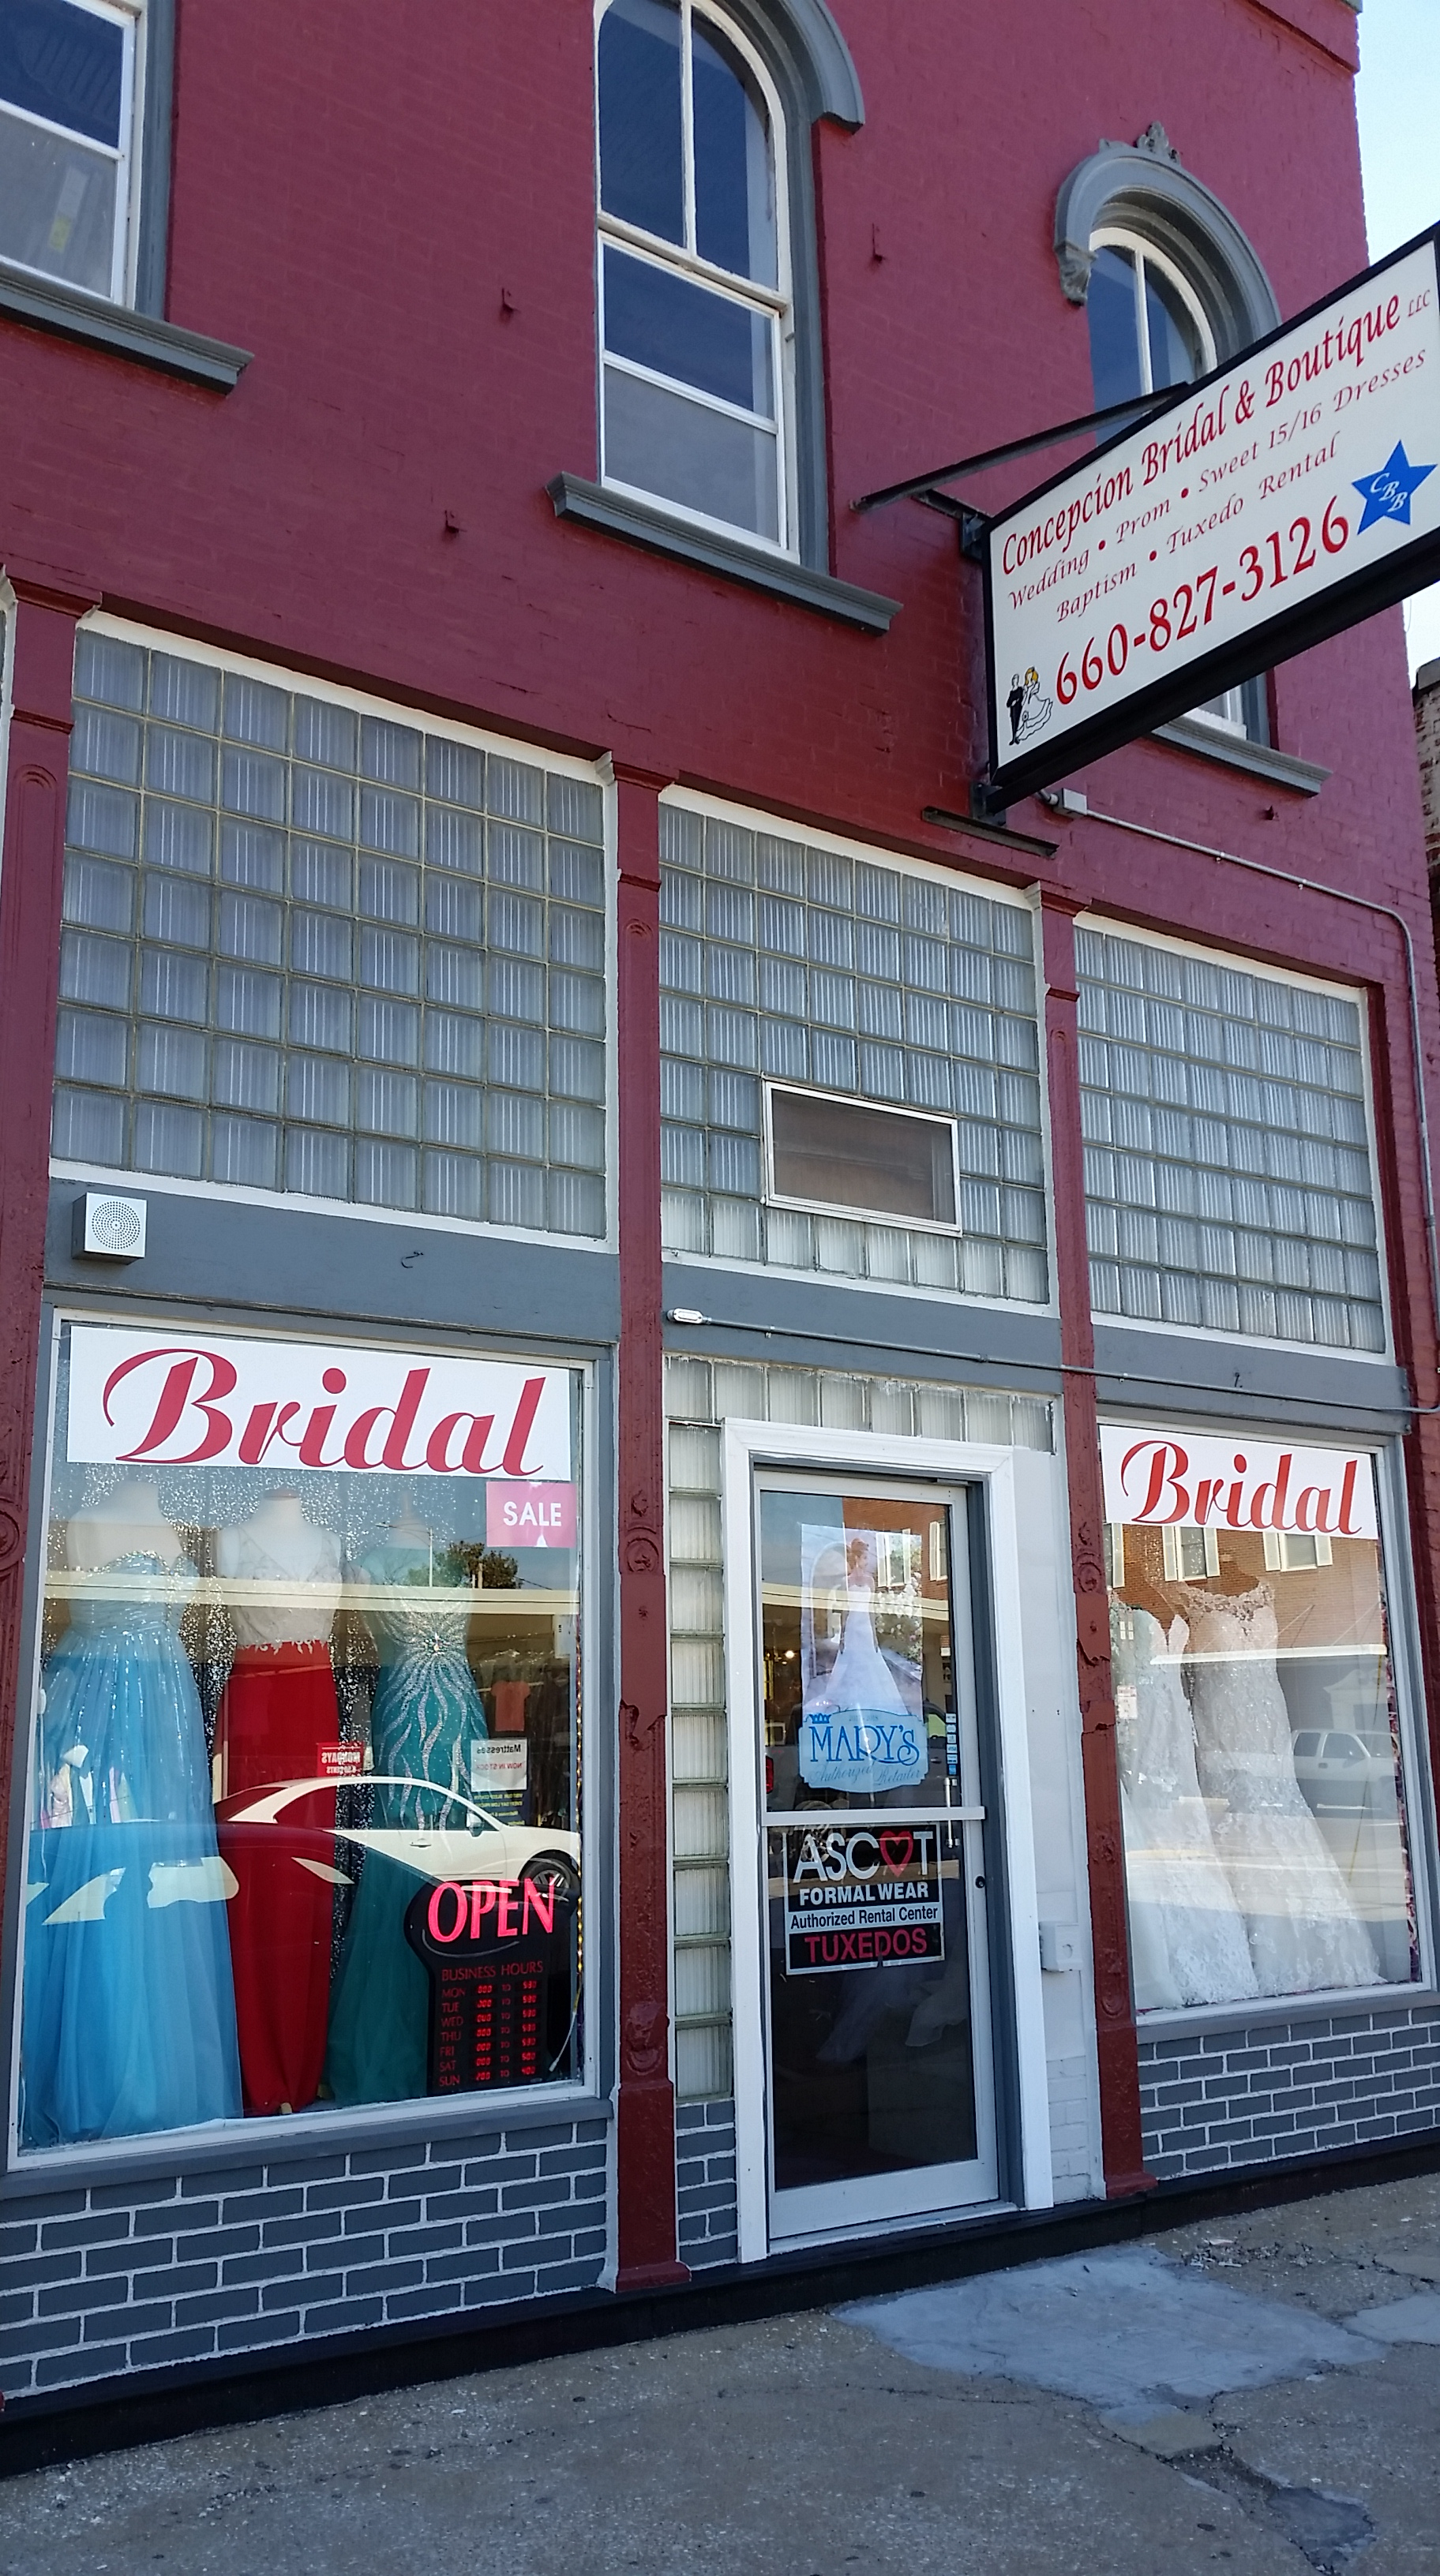 Concepcion Bridal & Quinceañera Boutique, LLC